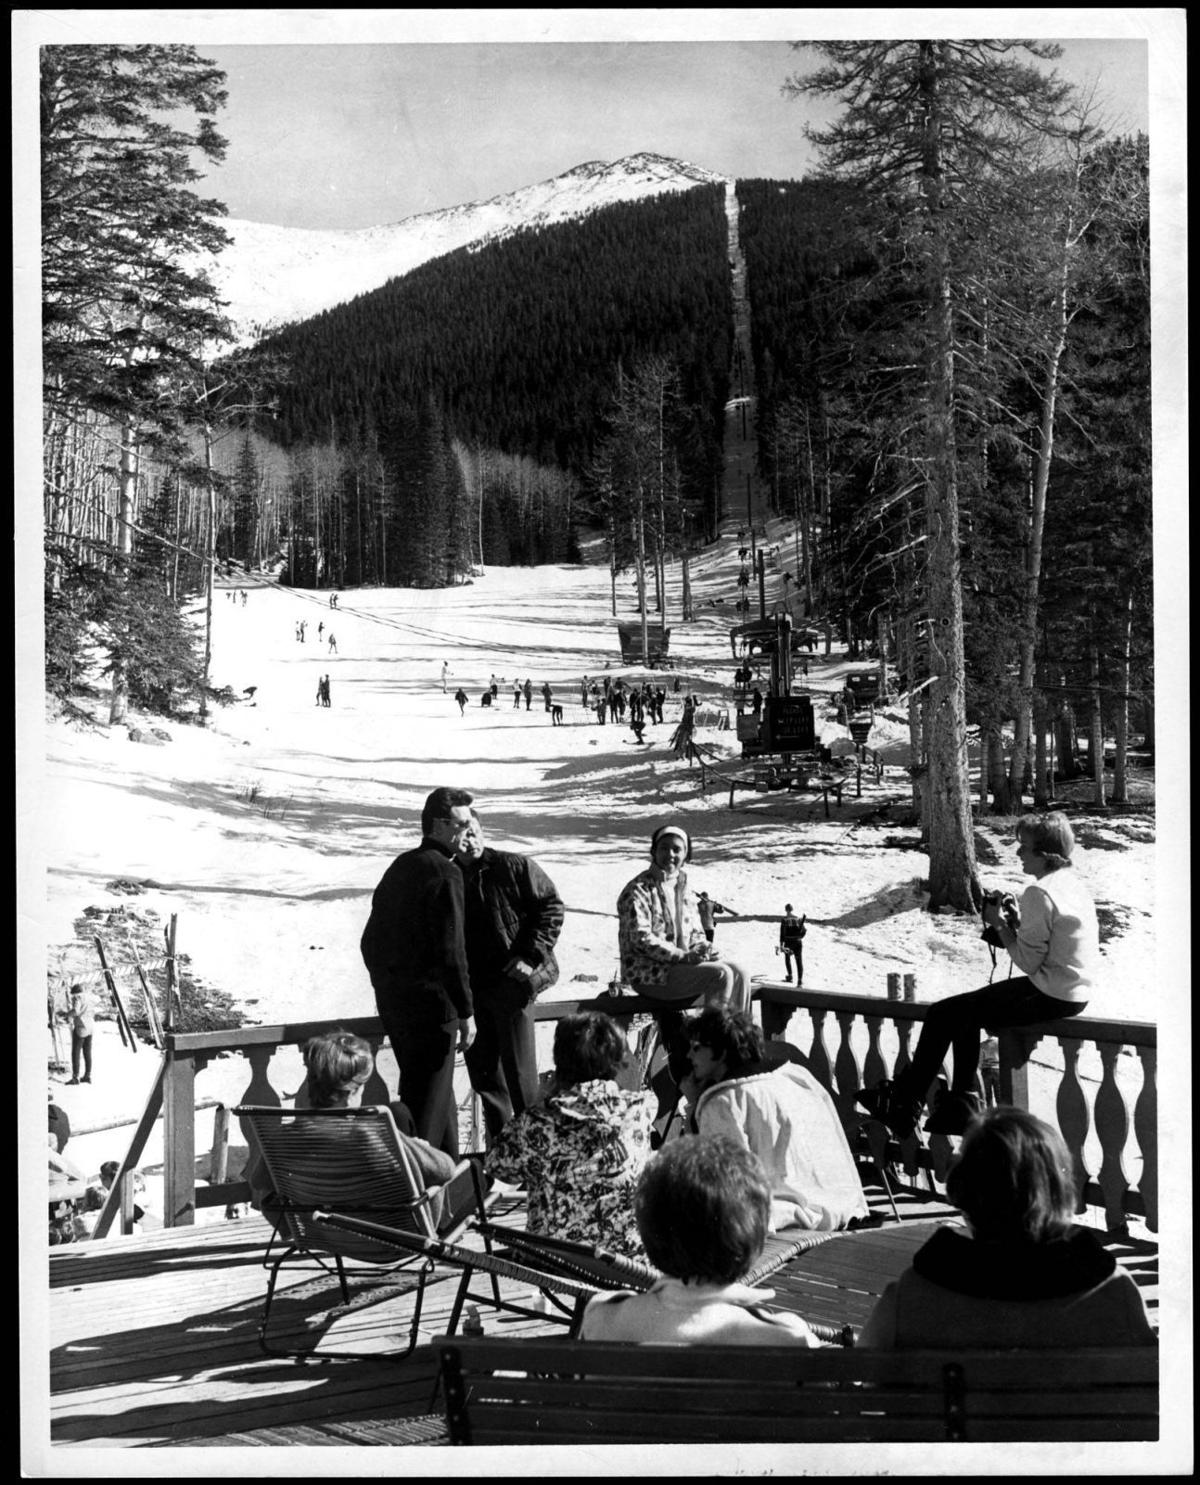 1968: The view from the deck at the Ski Lift Lodge